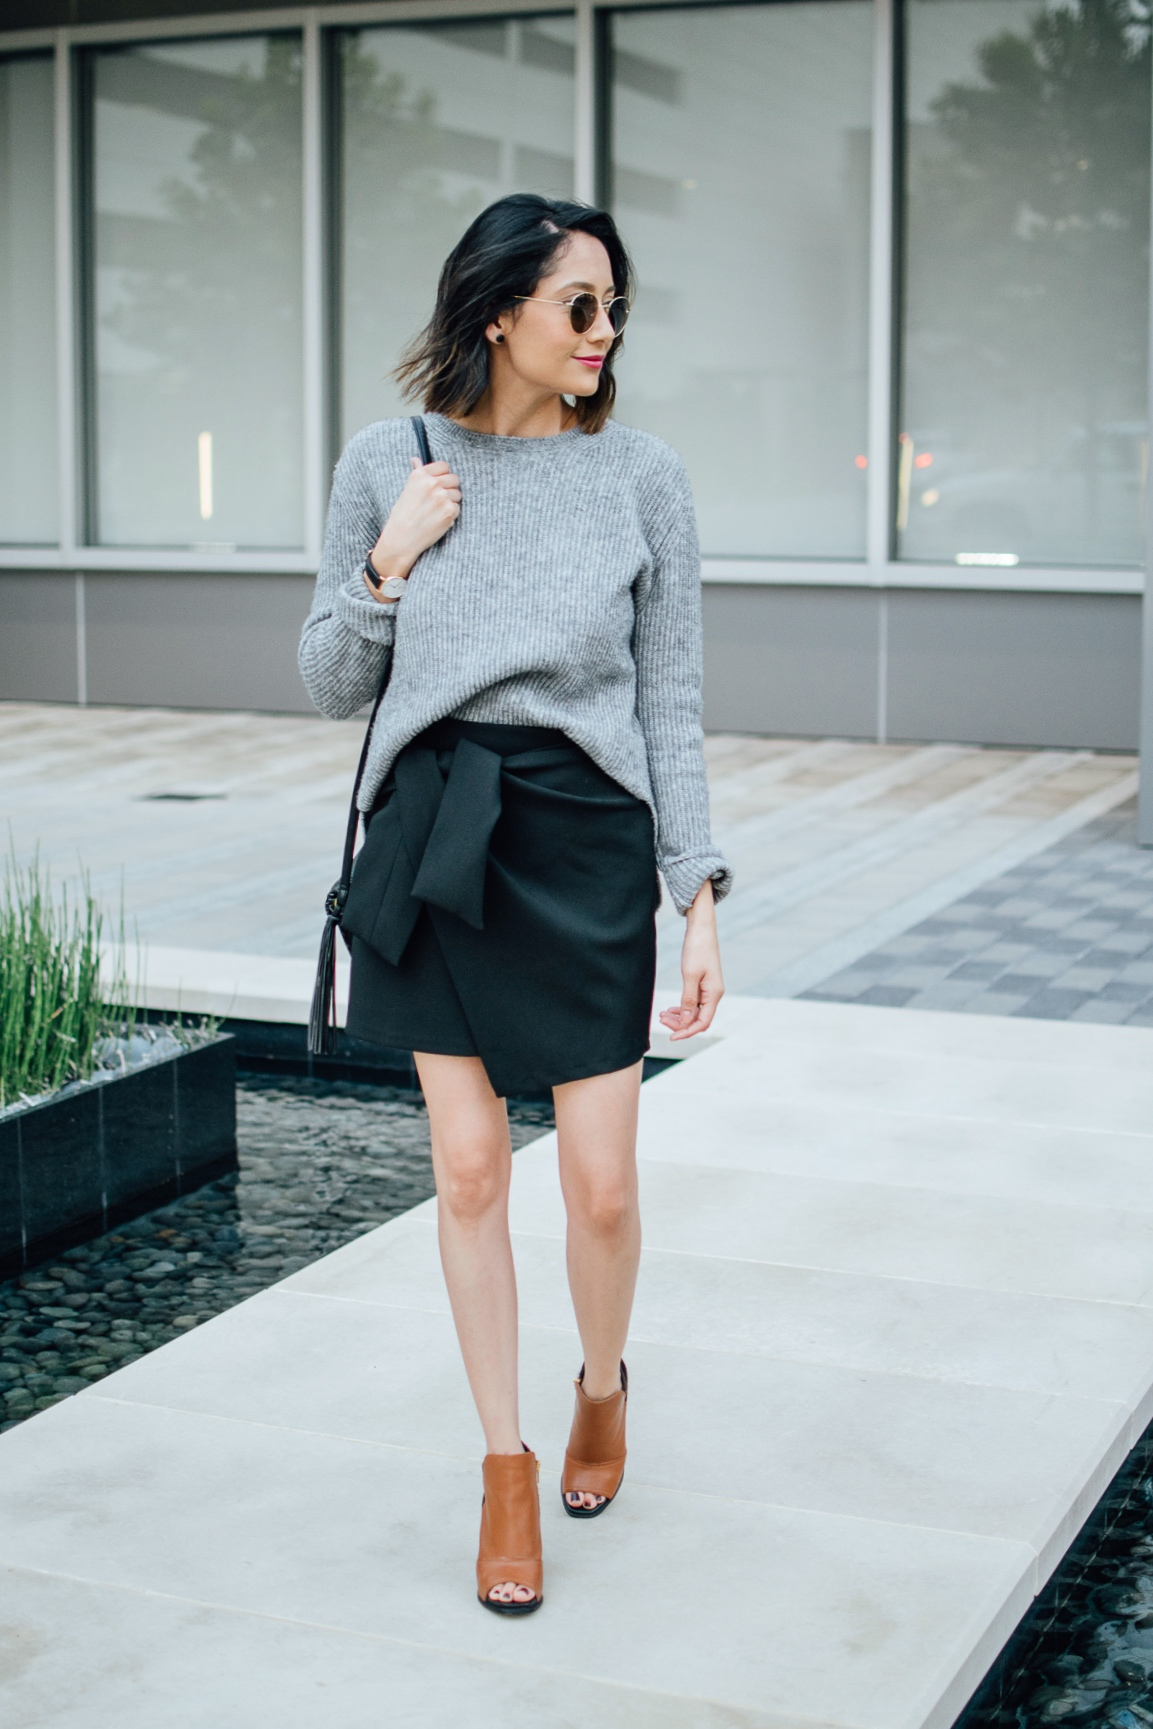 Lilly Beltran of Daily Craving blog in a chic fall outfit with a grey sweater, black wrap skirt and leather boots